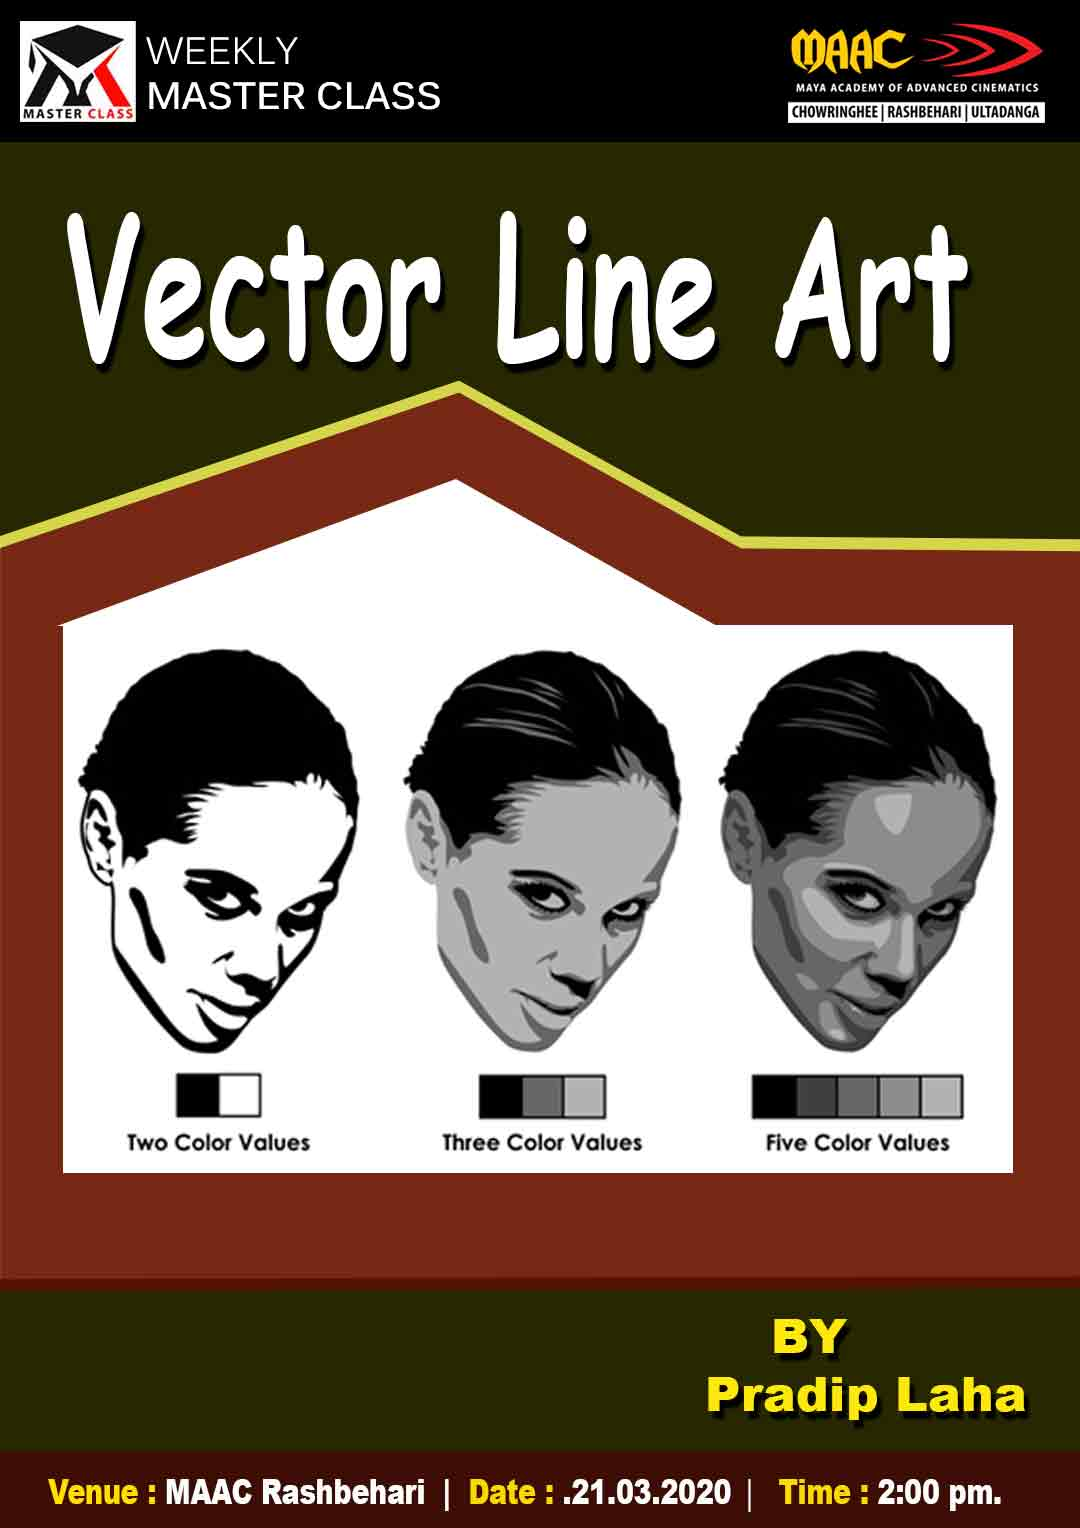 Weekly Master Class on Vector Line Art